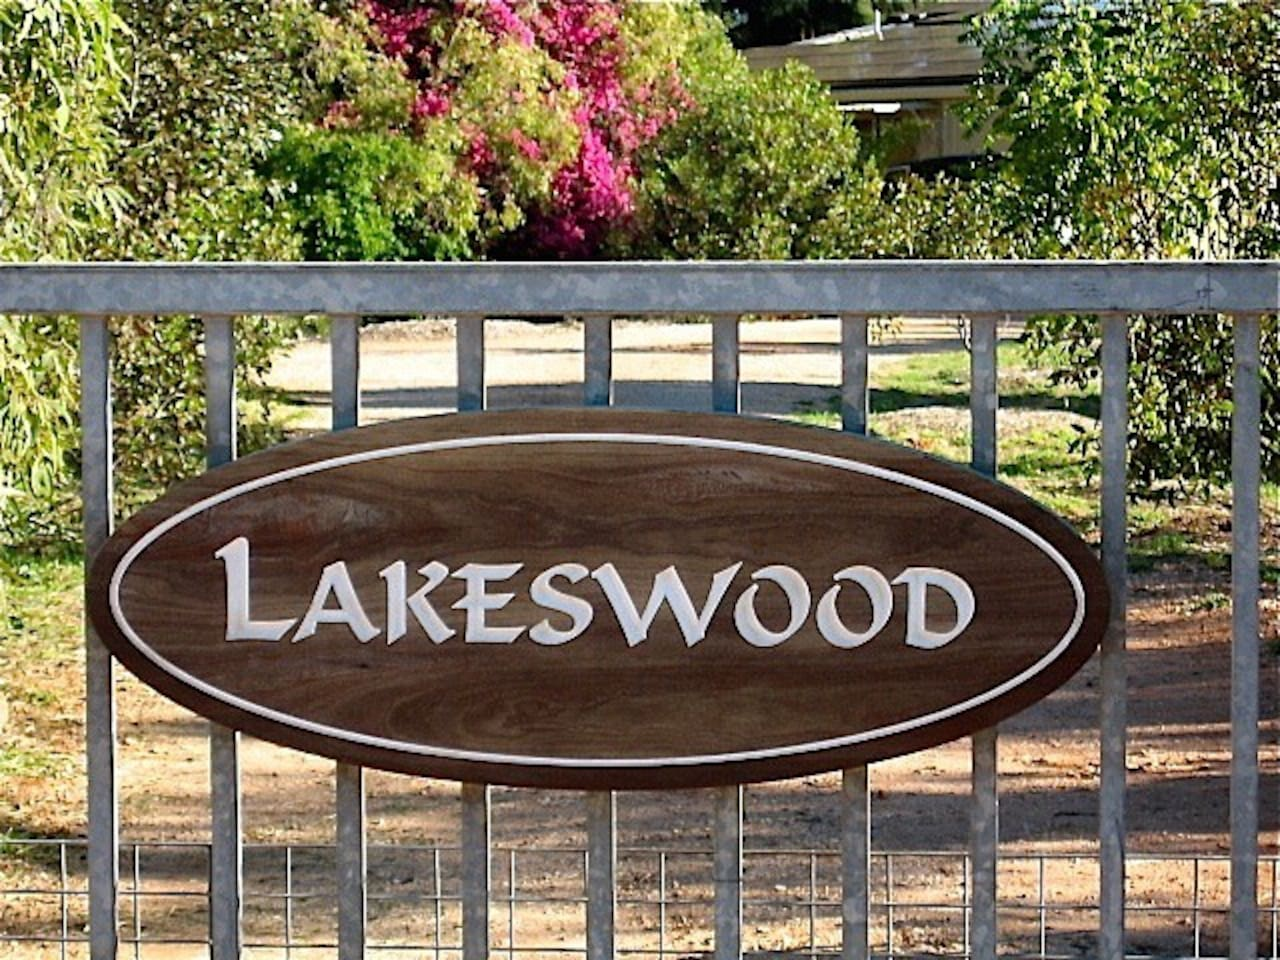 Entrance to Lakeswood and the B&B studio apartment.